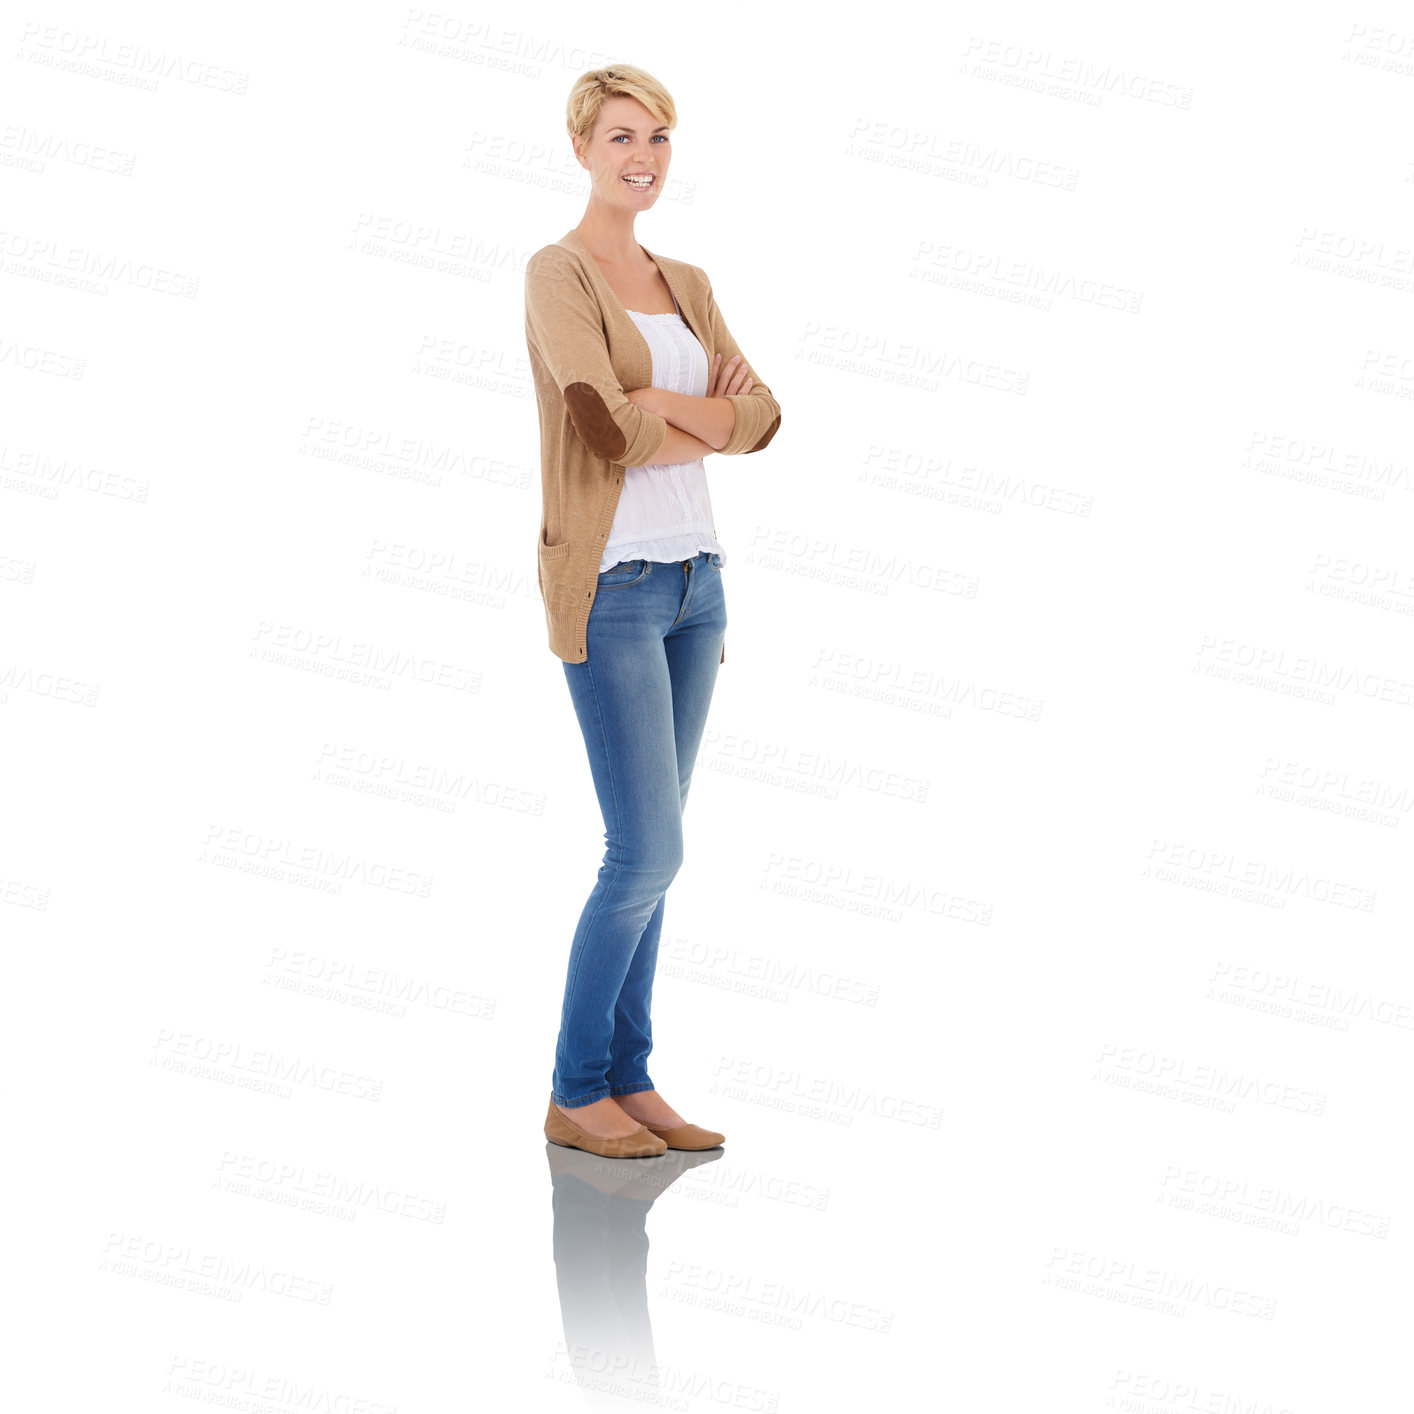 Buy stock photo Studio portrait of a casually dressed woman isolated on white